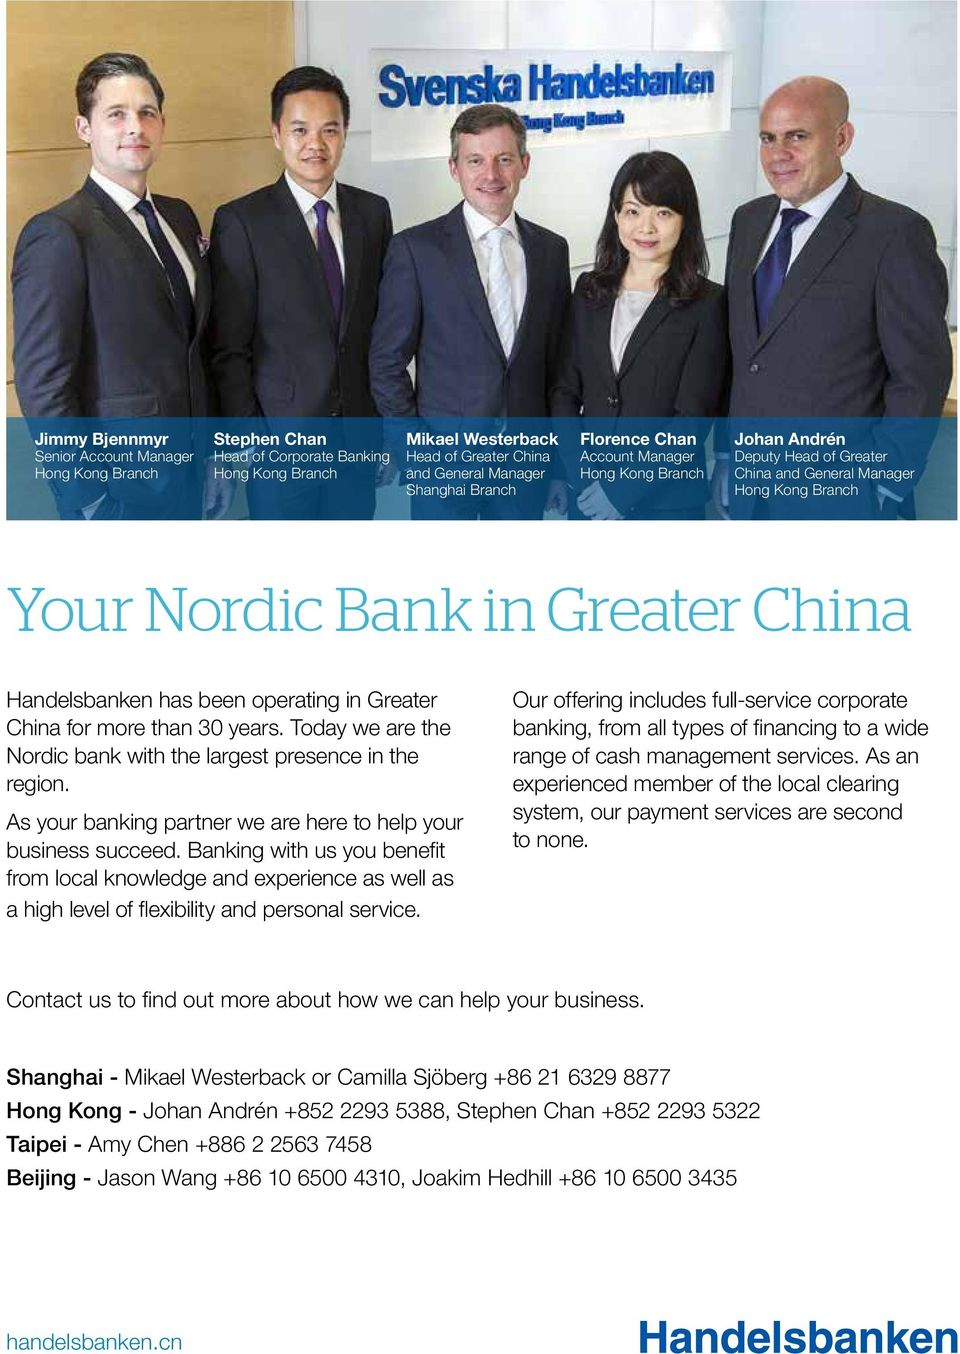 China for more than 30 years. Today we are the Nordic bank with the largest presence in the region. As your banking partner we are here to help your business succeed.